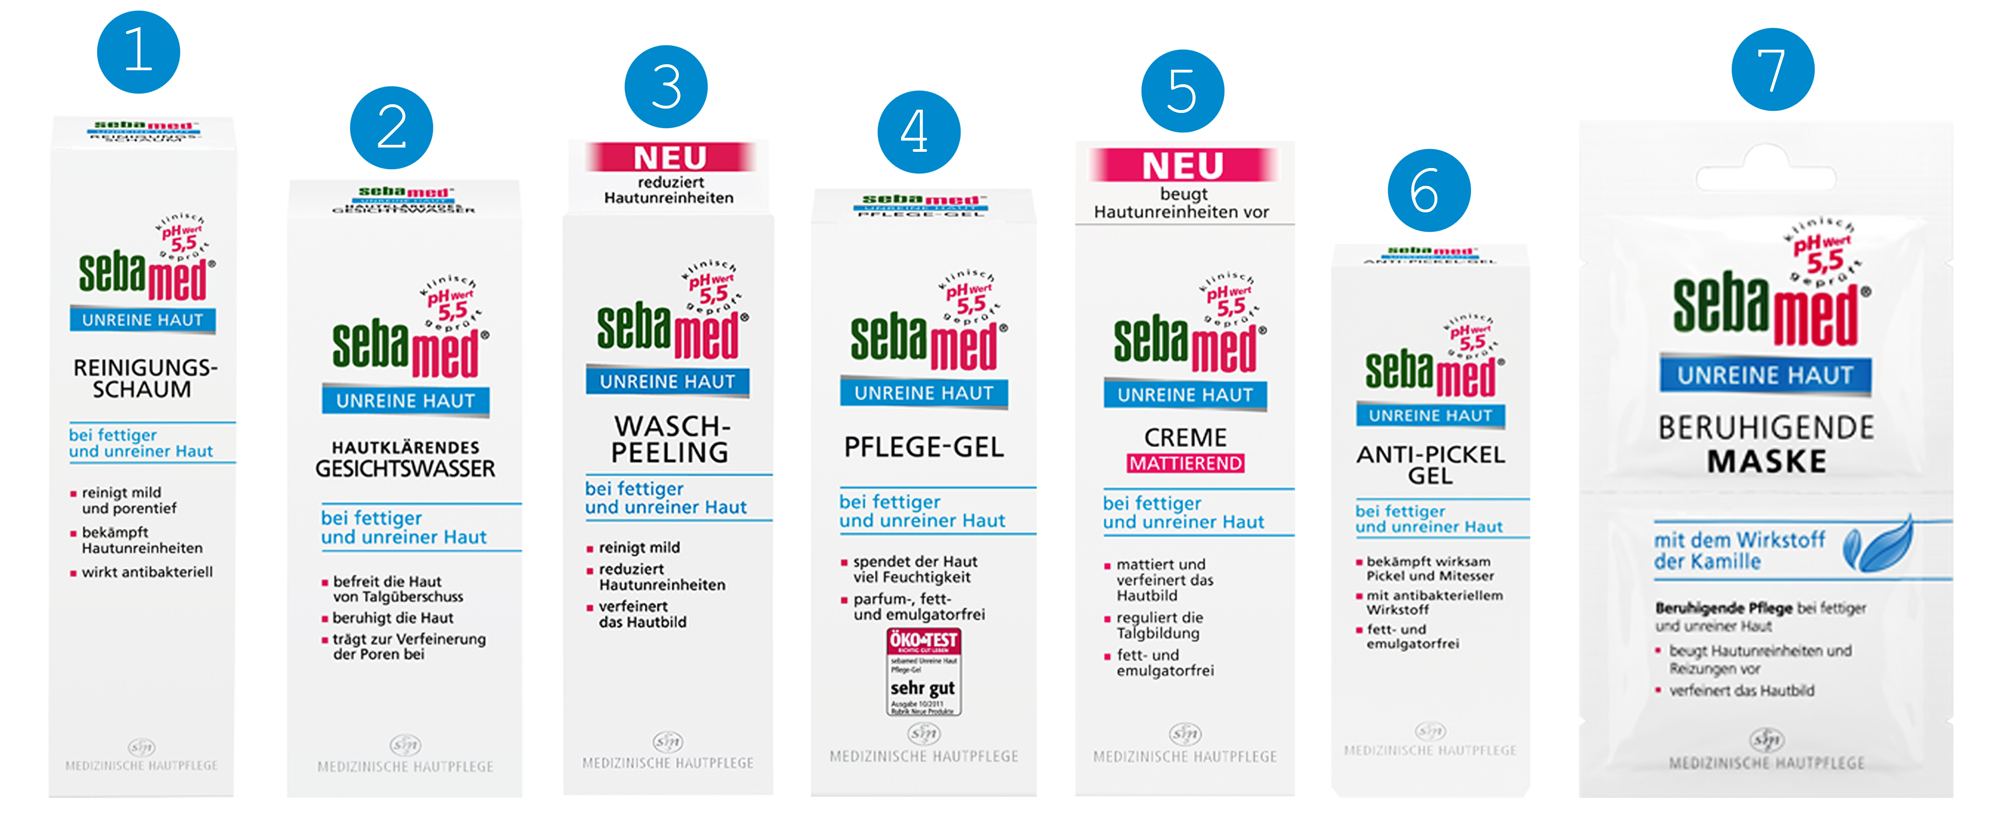 incicheck_sebamed_unreine_haut